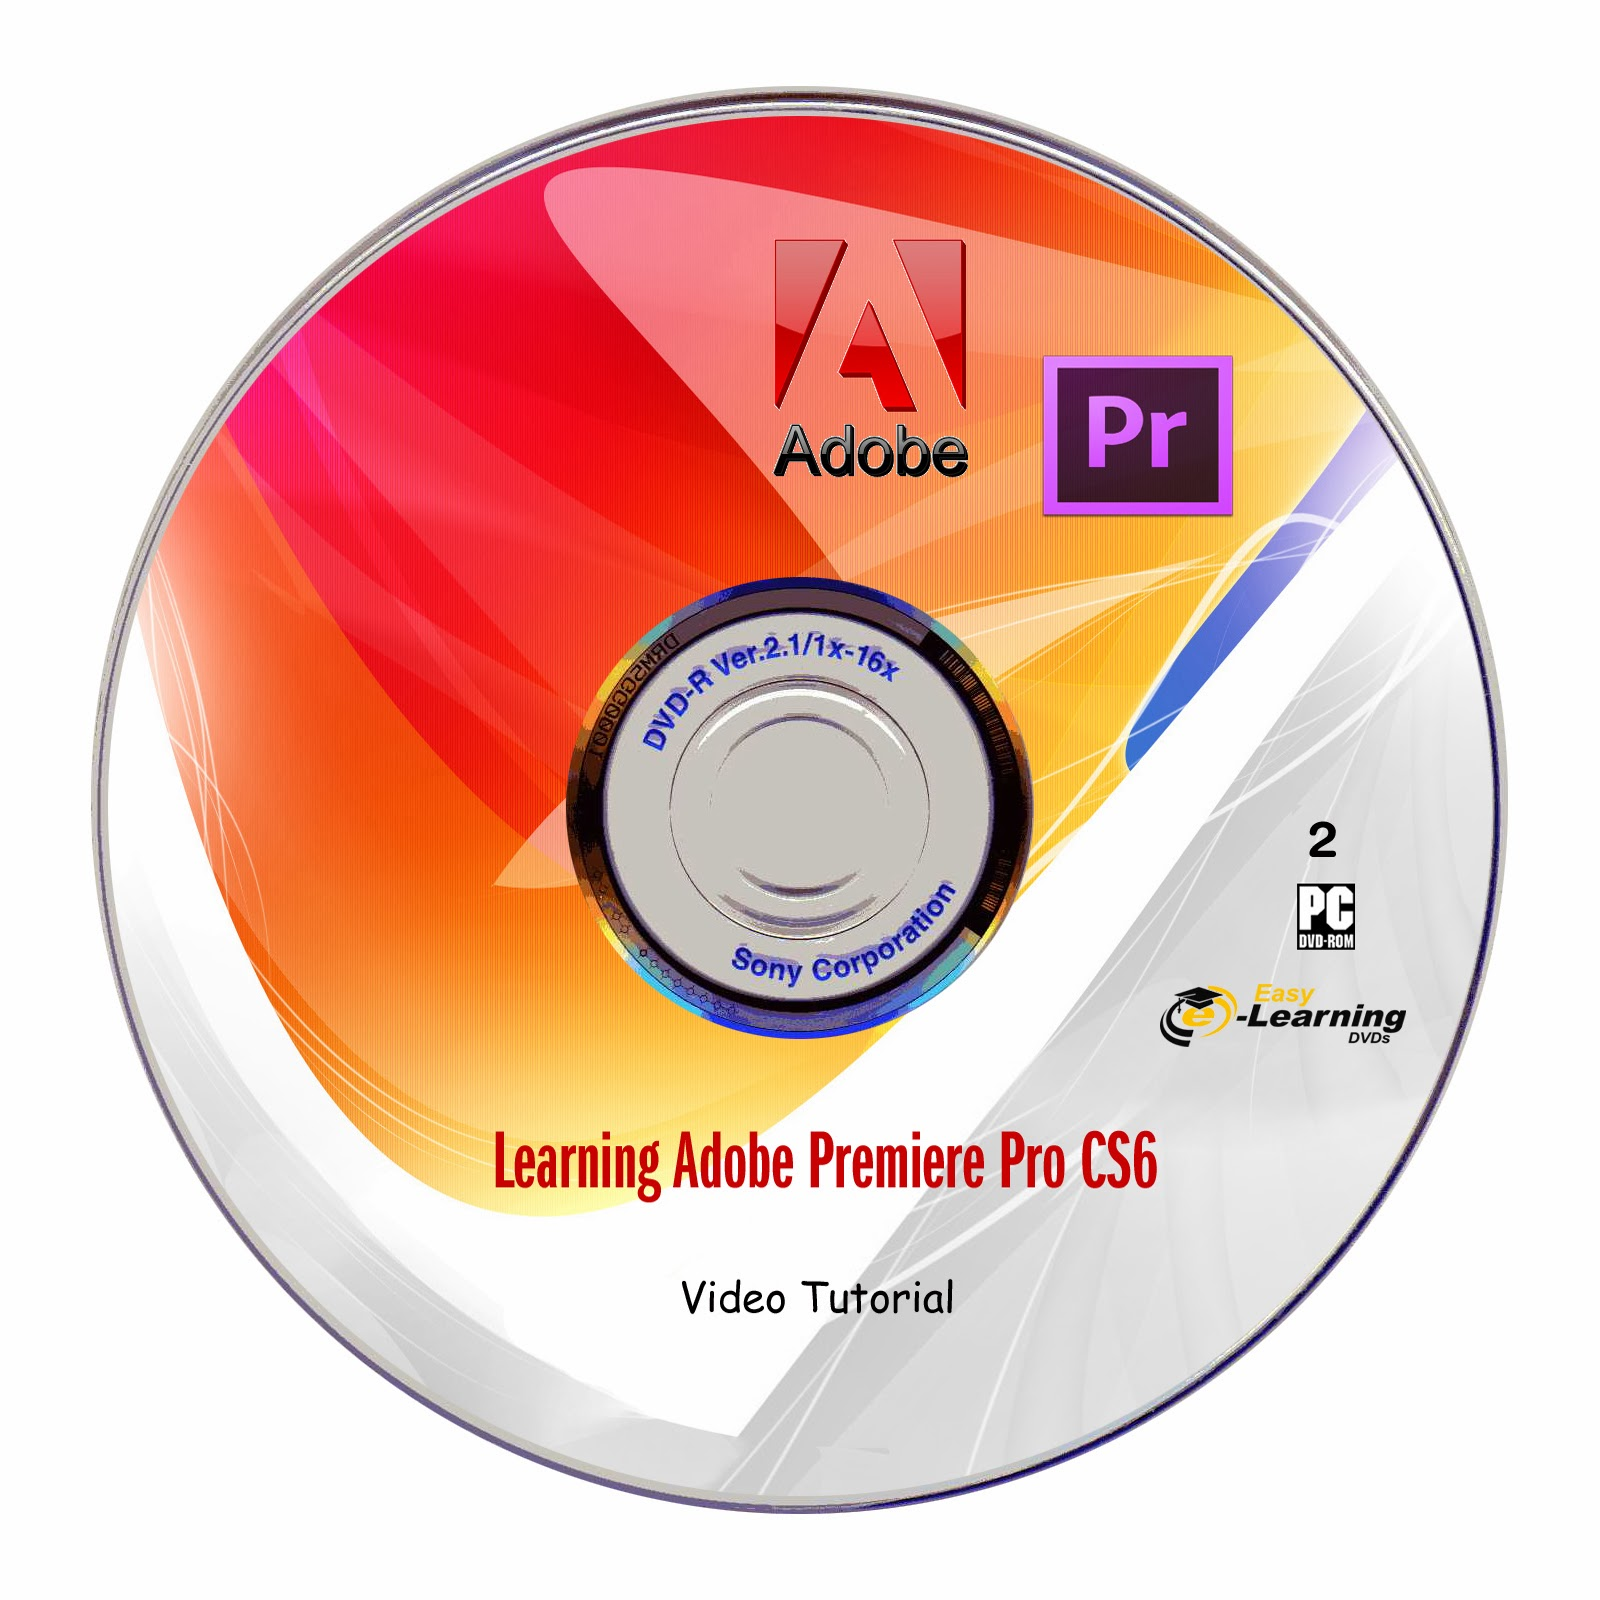 Learning Adobe Premiere Pro Cs6 Training Video Tutorial 2 Dvds. Best Balance Transfer Offers. Accredited Online Accounting Degrees. How To Add Subtitles In A Video. Mechanics Training Courses Pay Day Loans Now. New York Women Clothing Stores. Lasik Eye Surgery Information. Single Panel Garage Doors Best Cheap Web Cam. Reports In Sql Server 2008 Equifax Id Patrol